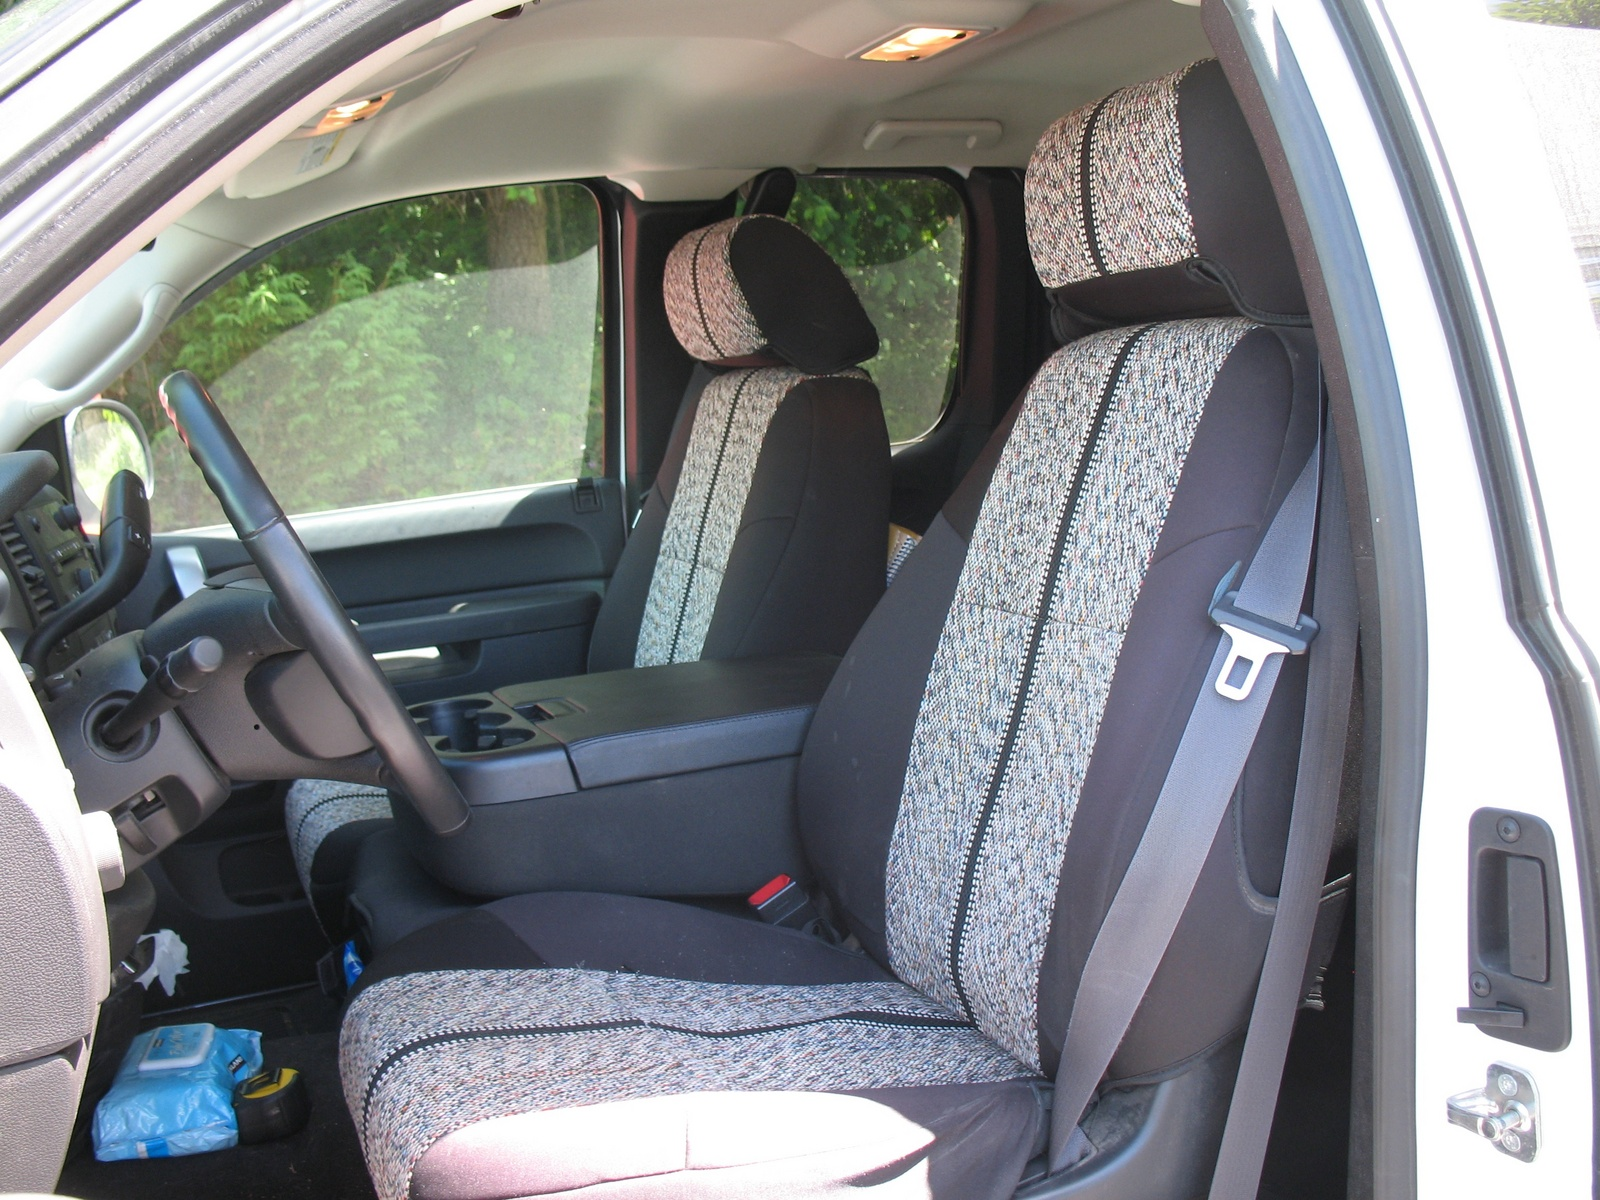 2013 chevy silverado problems autos post. Black Bedroom Furniture Sets. Home Design Ideas